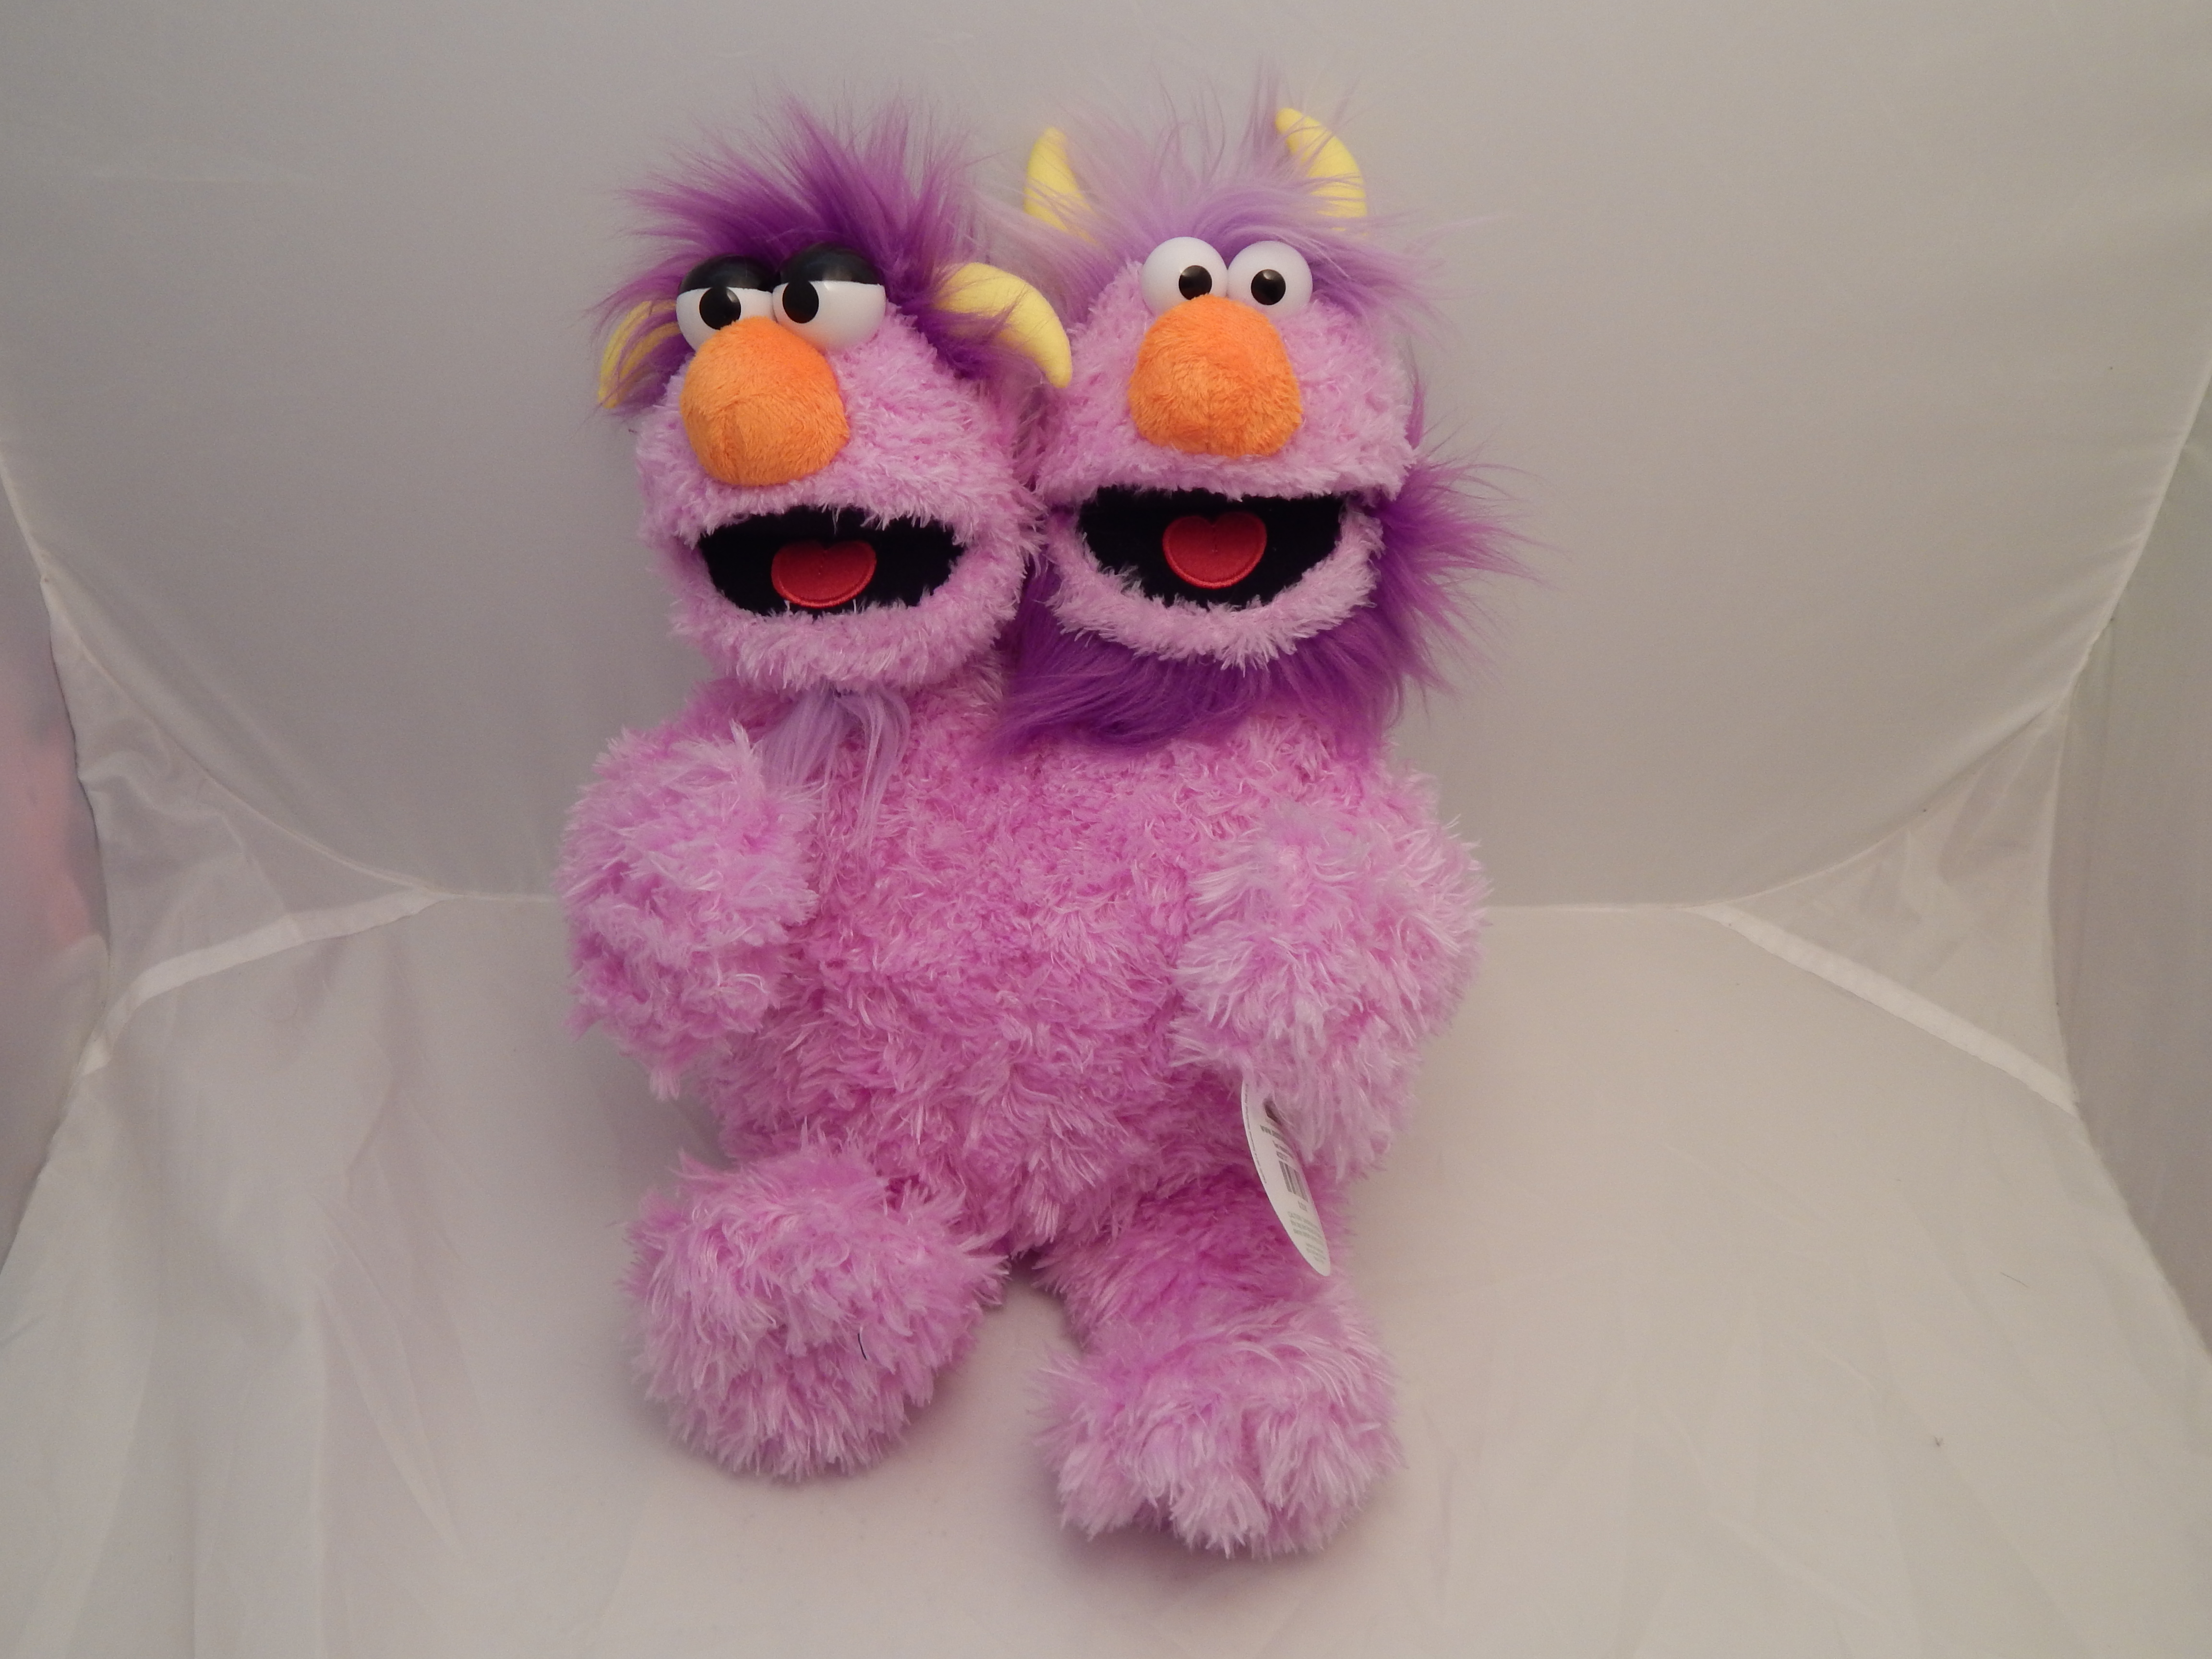 Sesame Place - Two Headed Monster